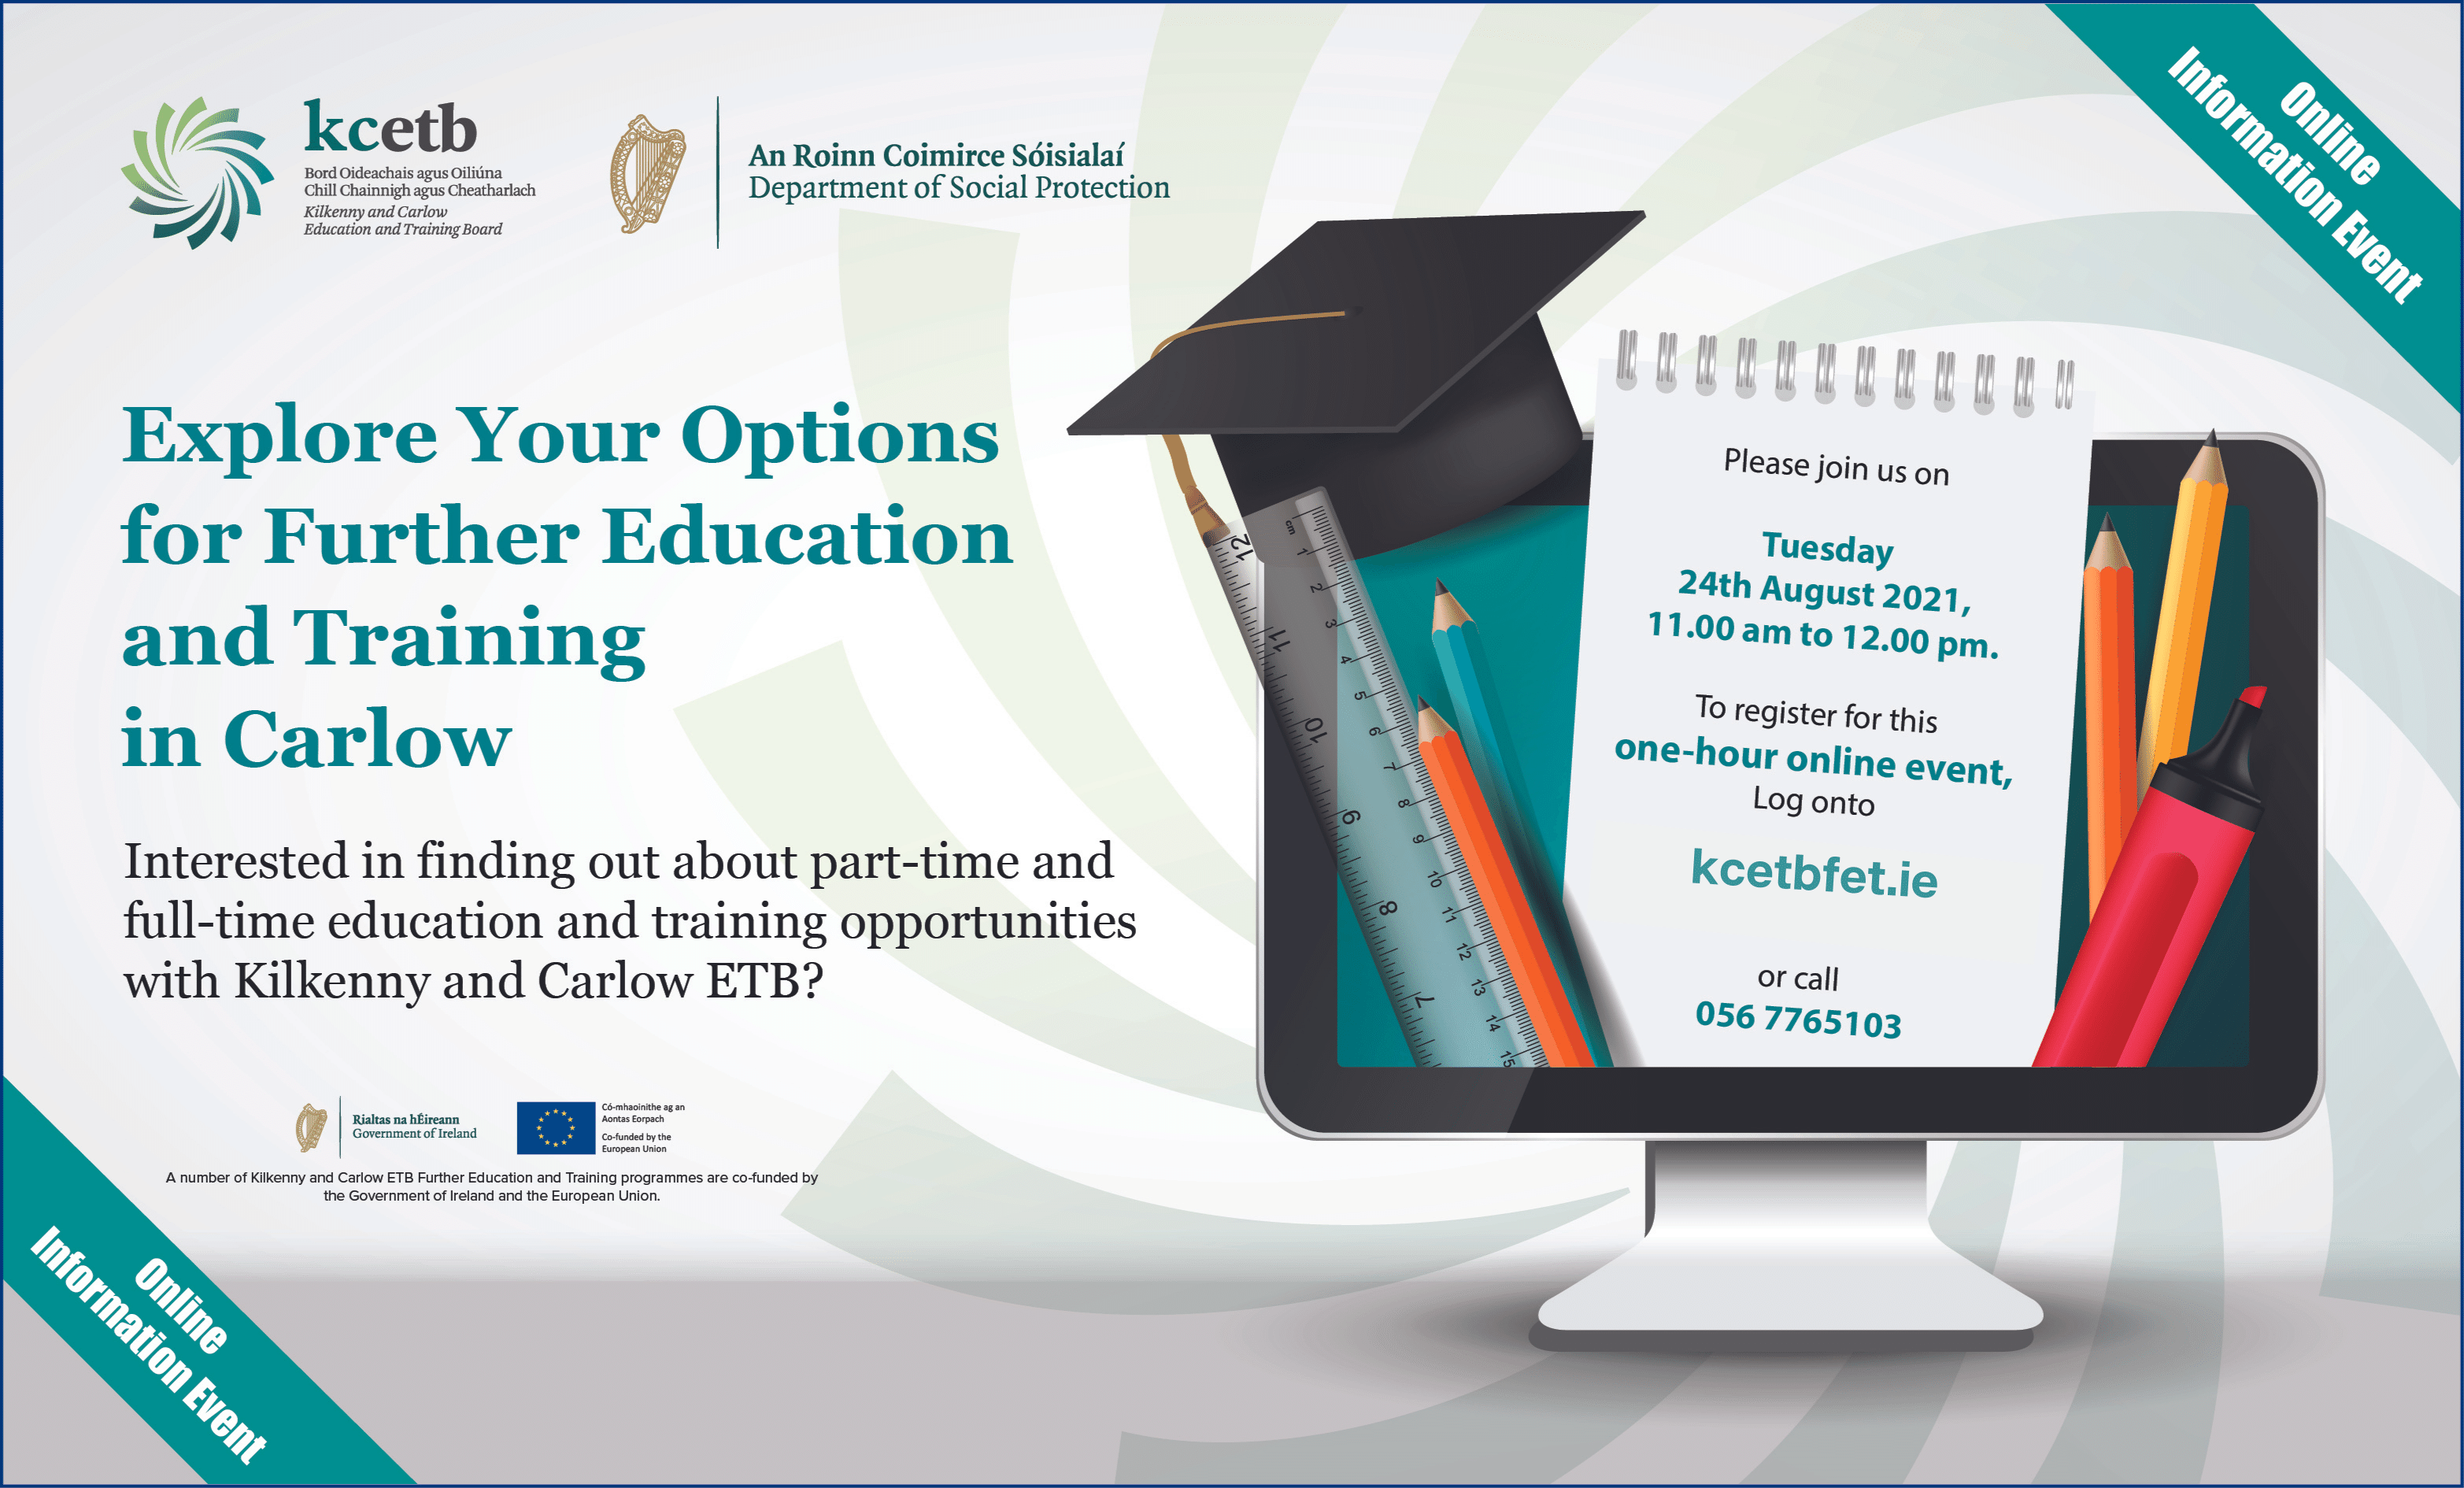 Explore Your Options for Further Education and Training in Carlow